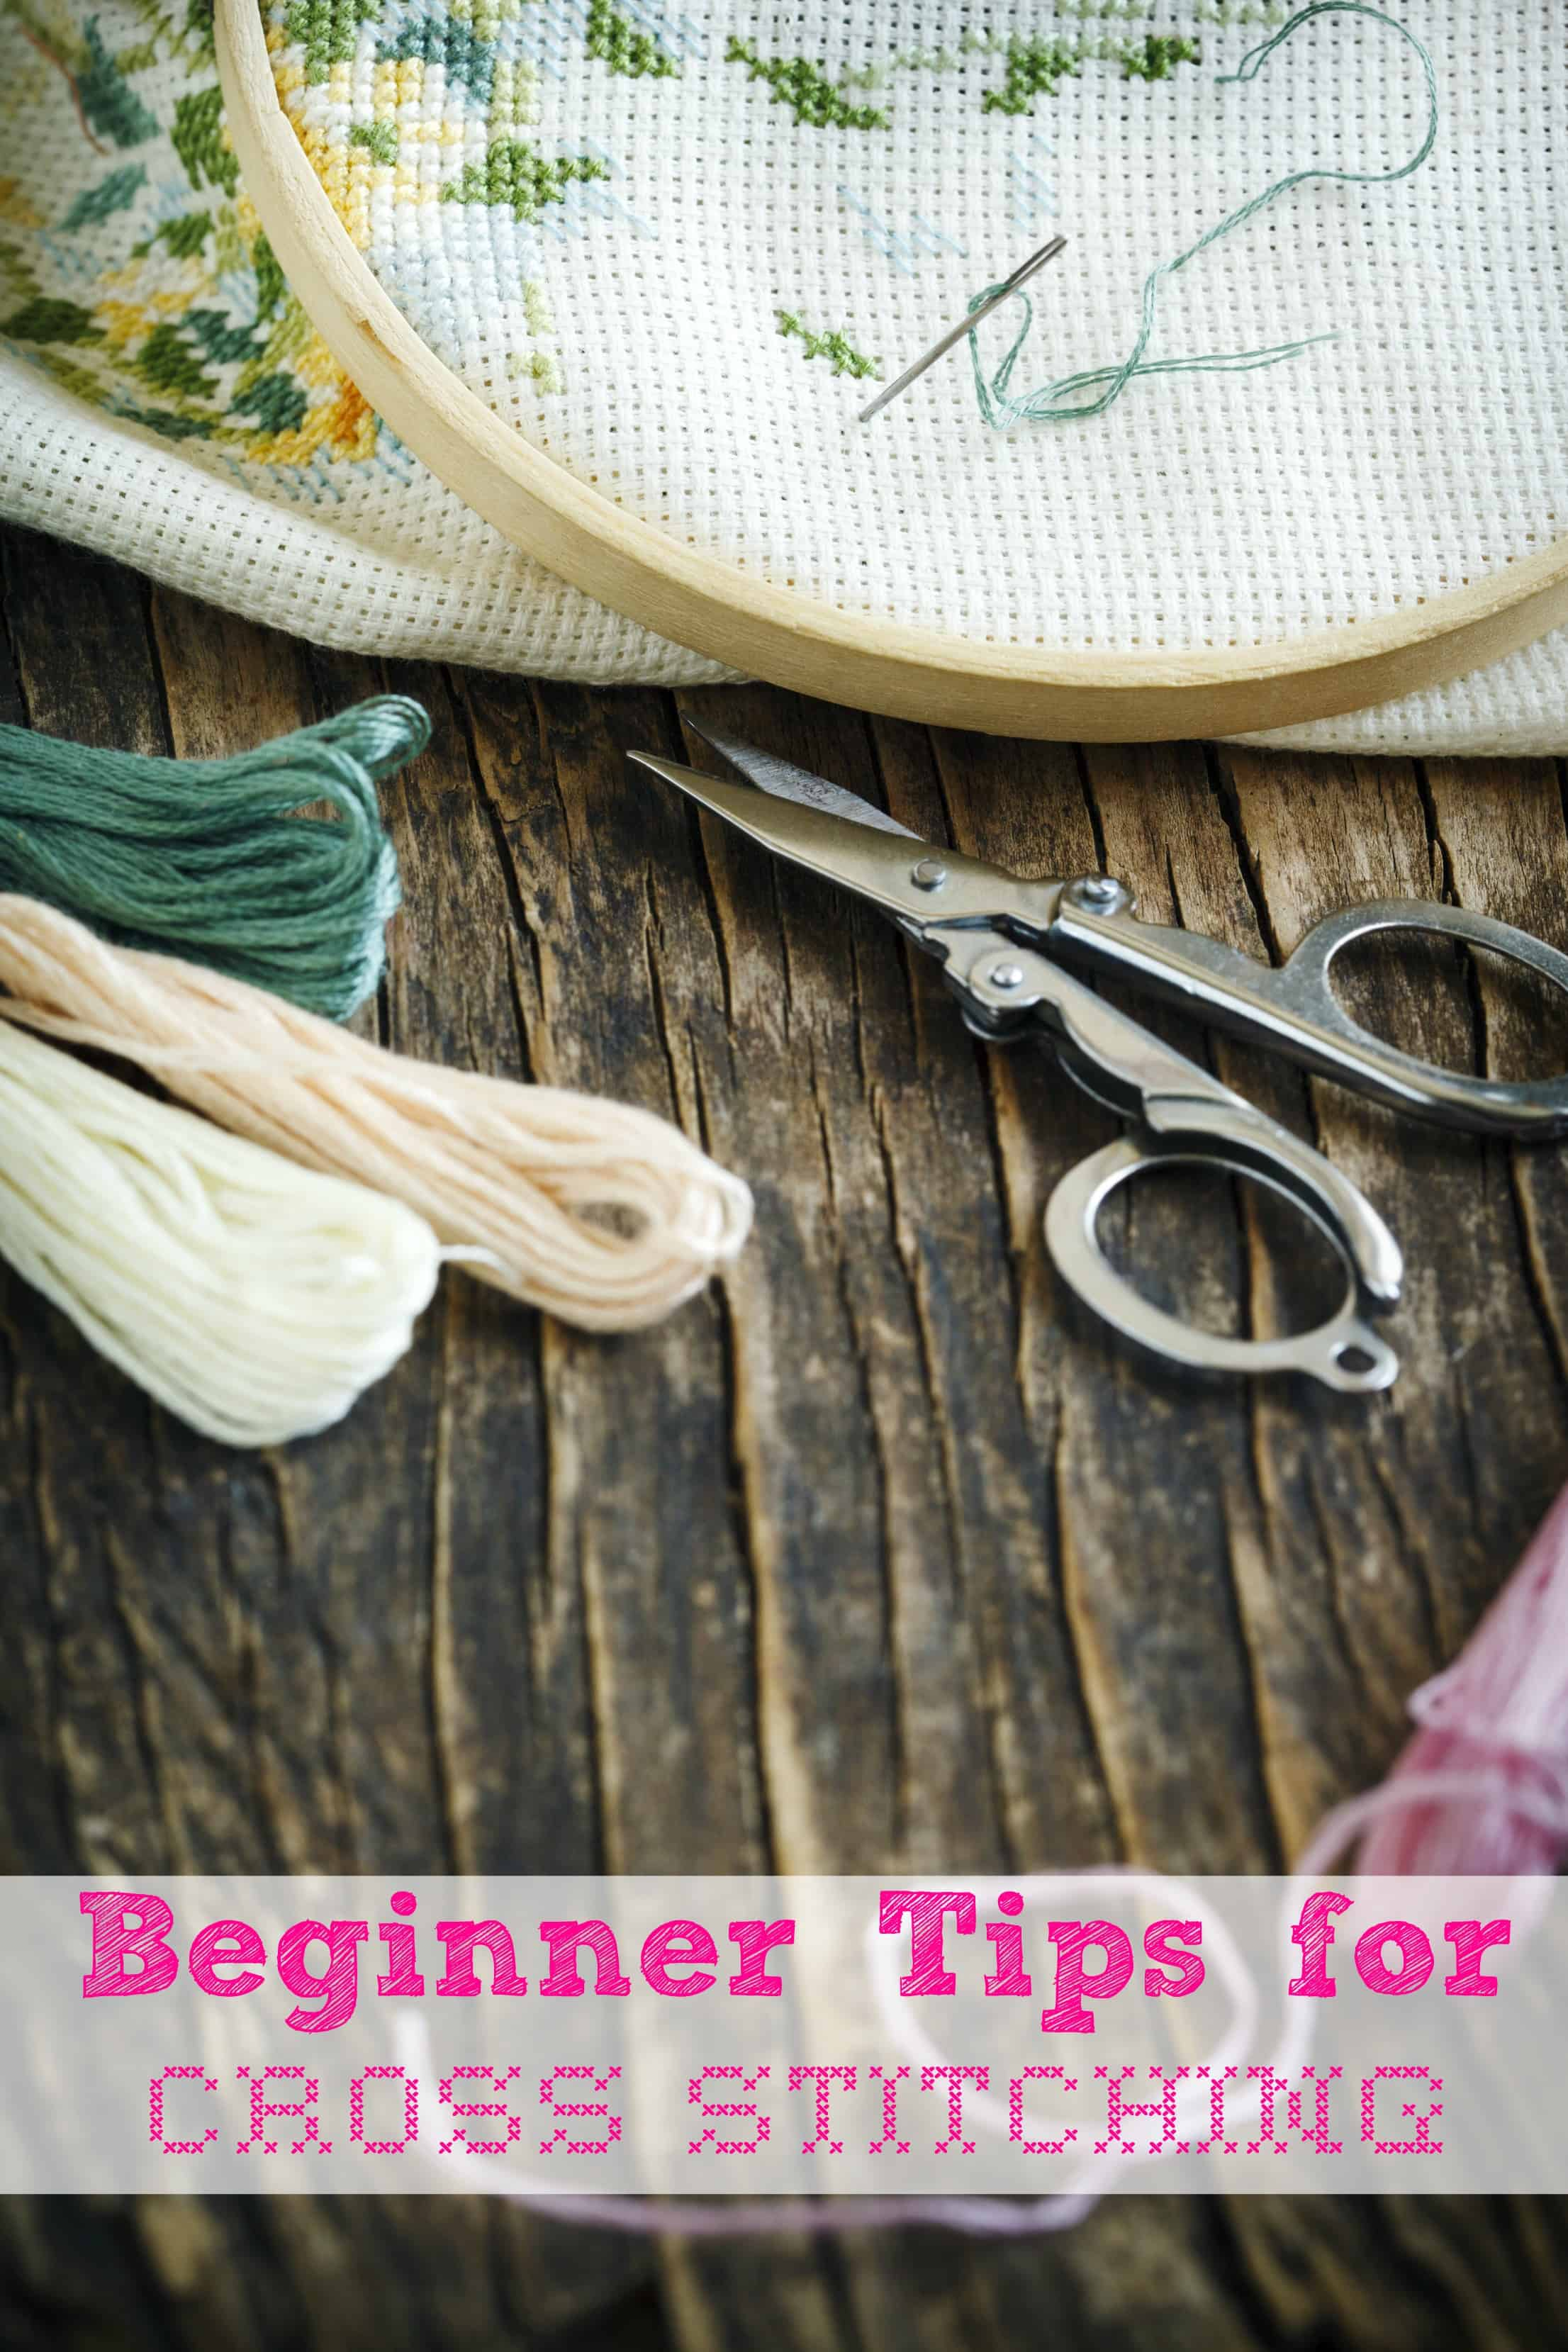 Cross stitching is a hobby that some people enjoy doing. It is a great way to relax and keep your fingers busy. Let these beginner tips for cross stitching help you get started! - Farmer's Wife Rambles